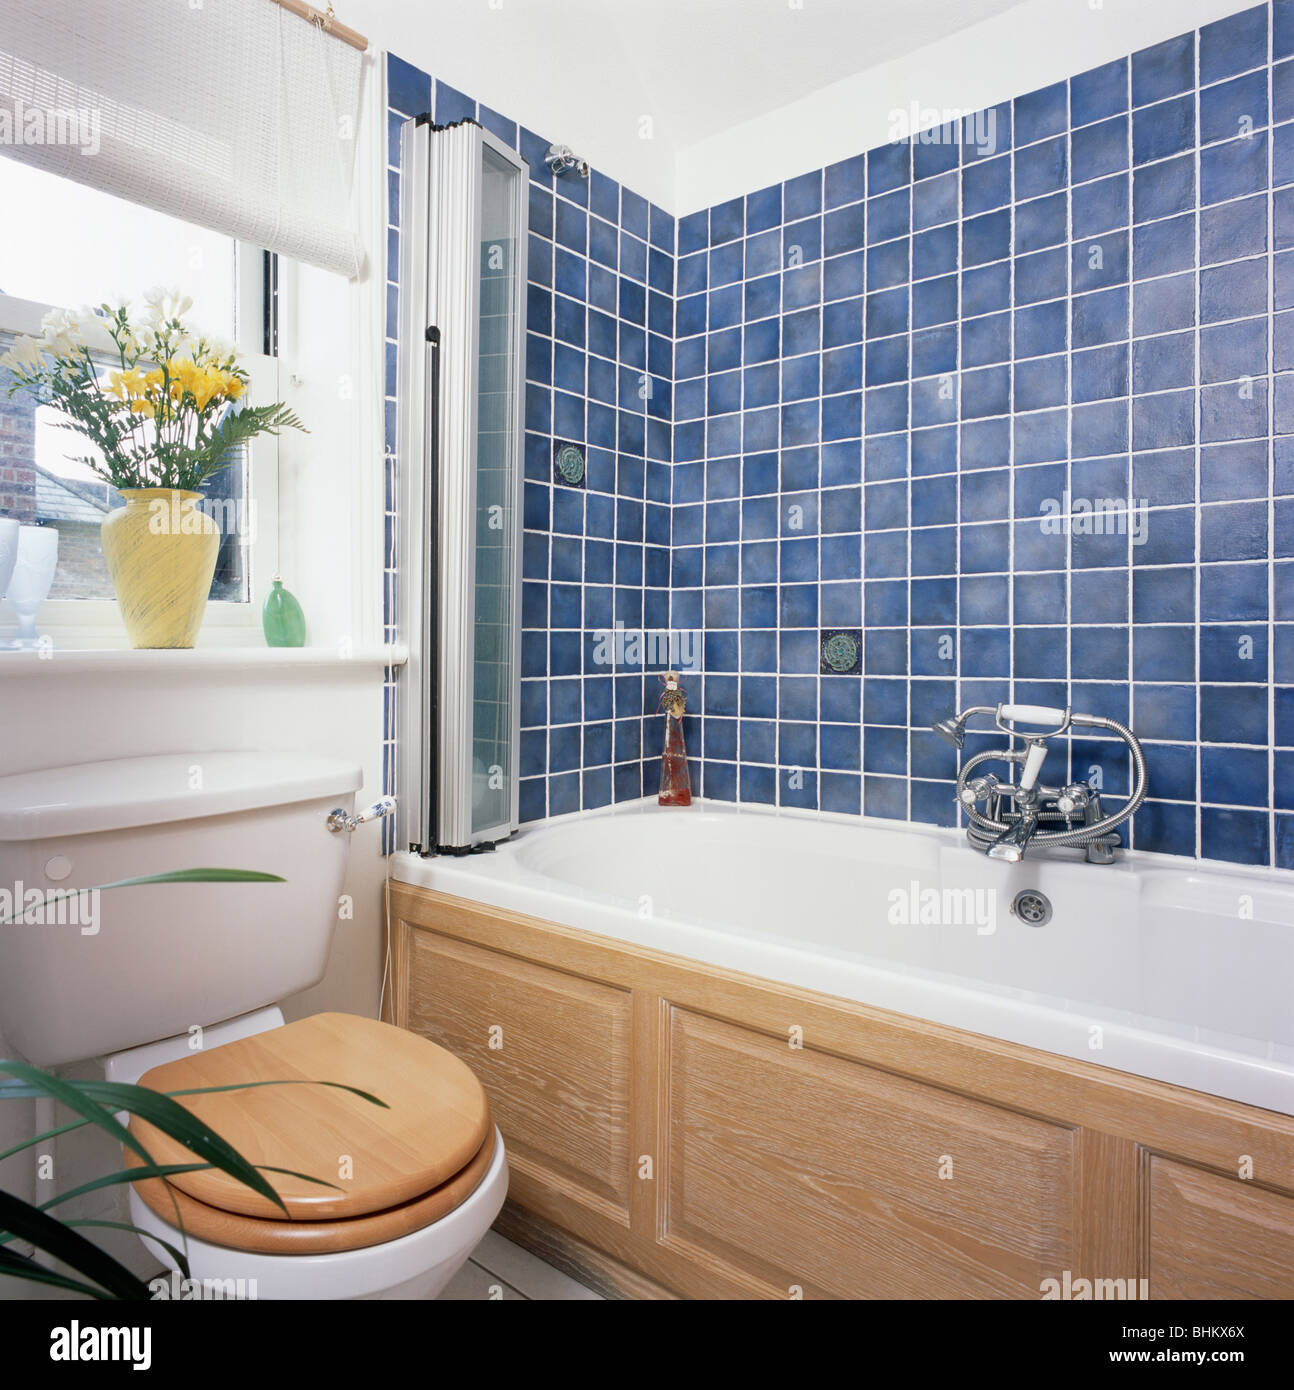 Small white economy-style bathroom with blue wall tiles above bath ...